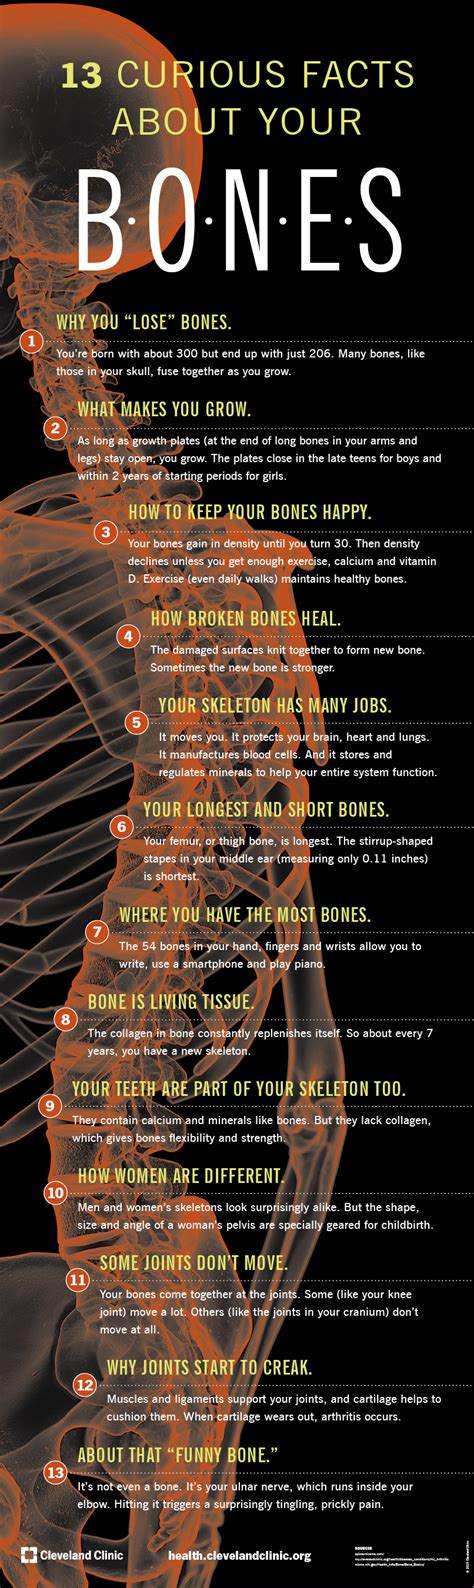 13 Strange and Interesting Facts About Your Bones – Health ...